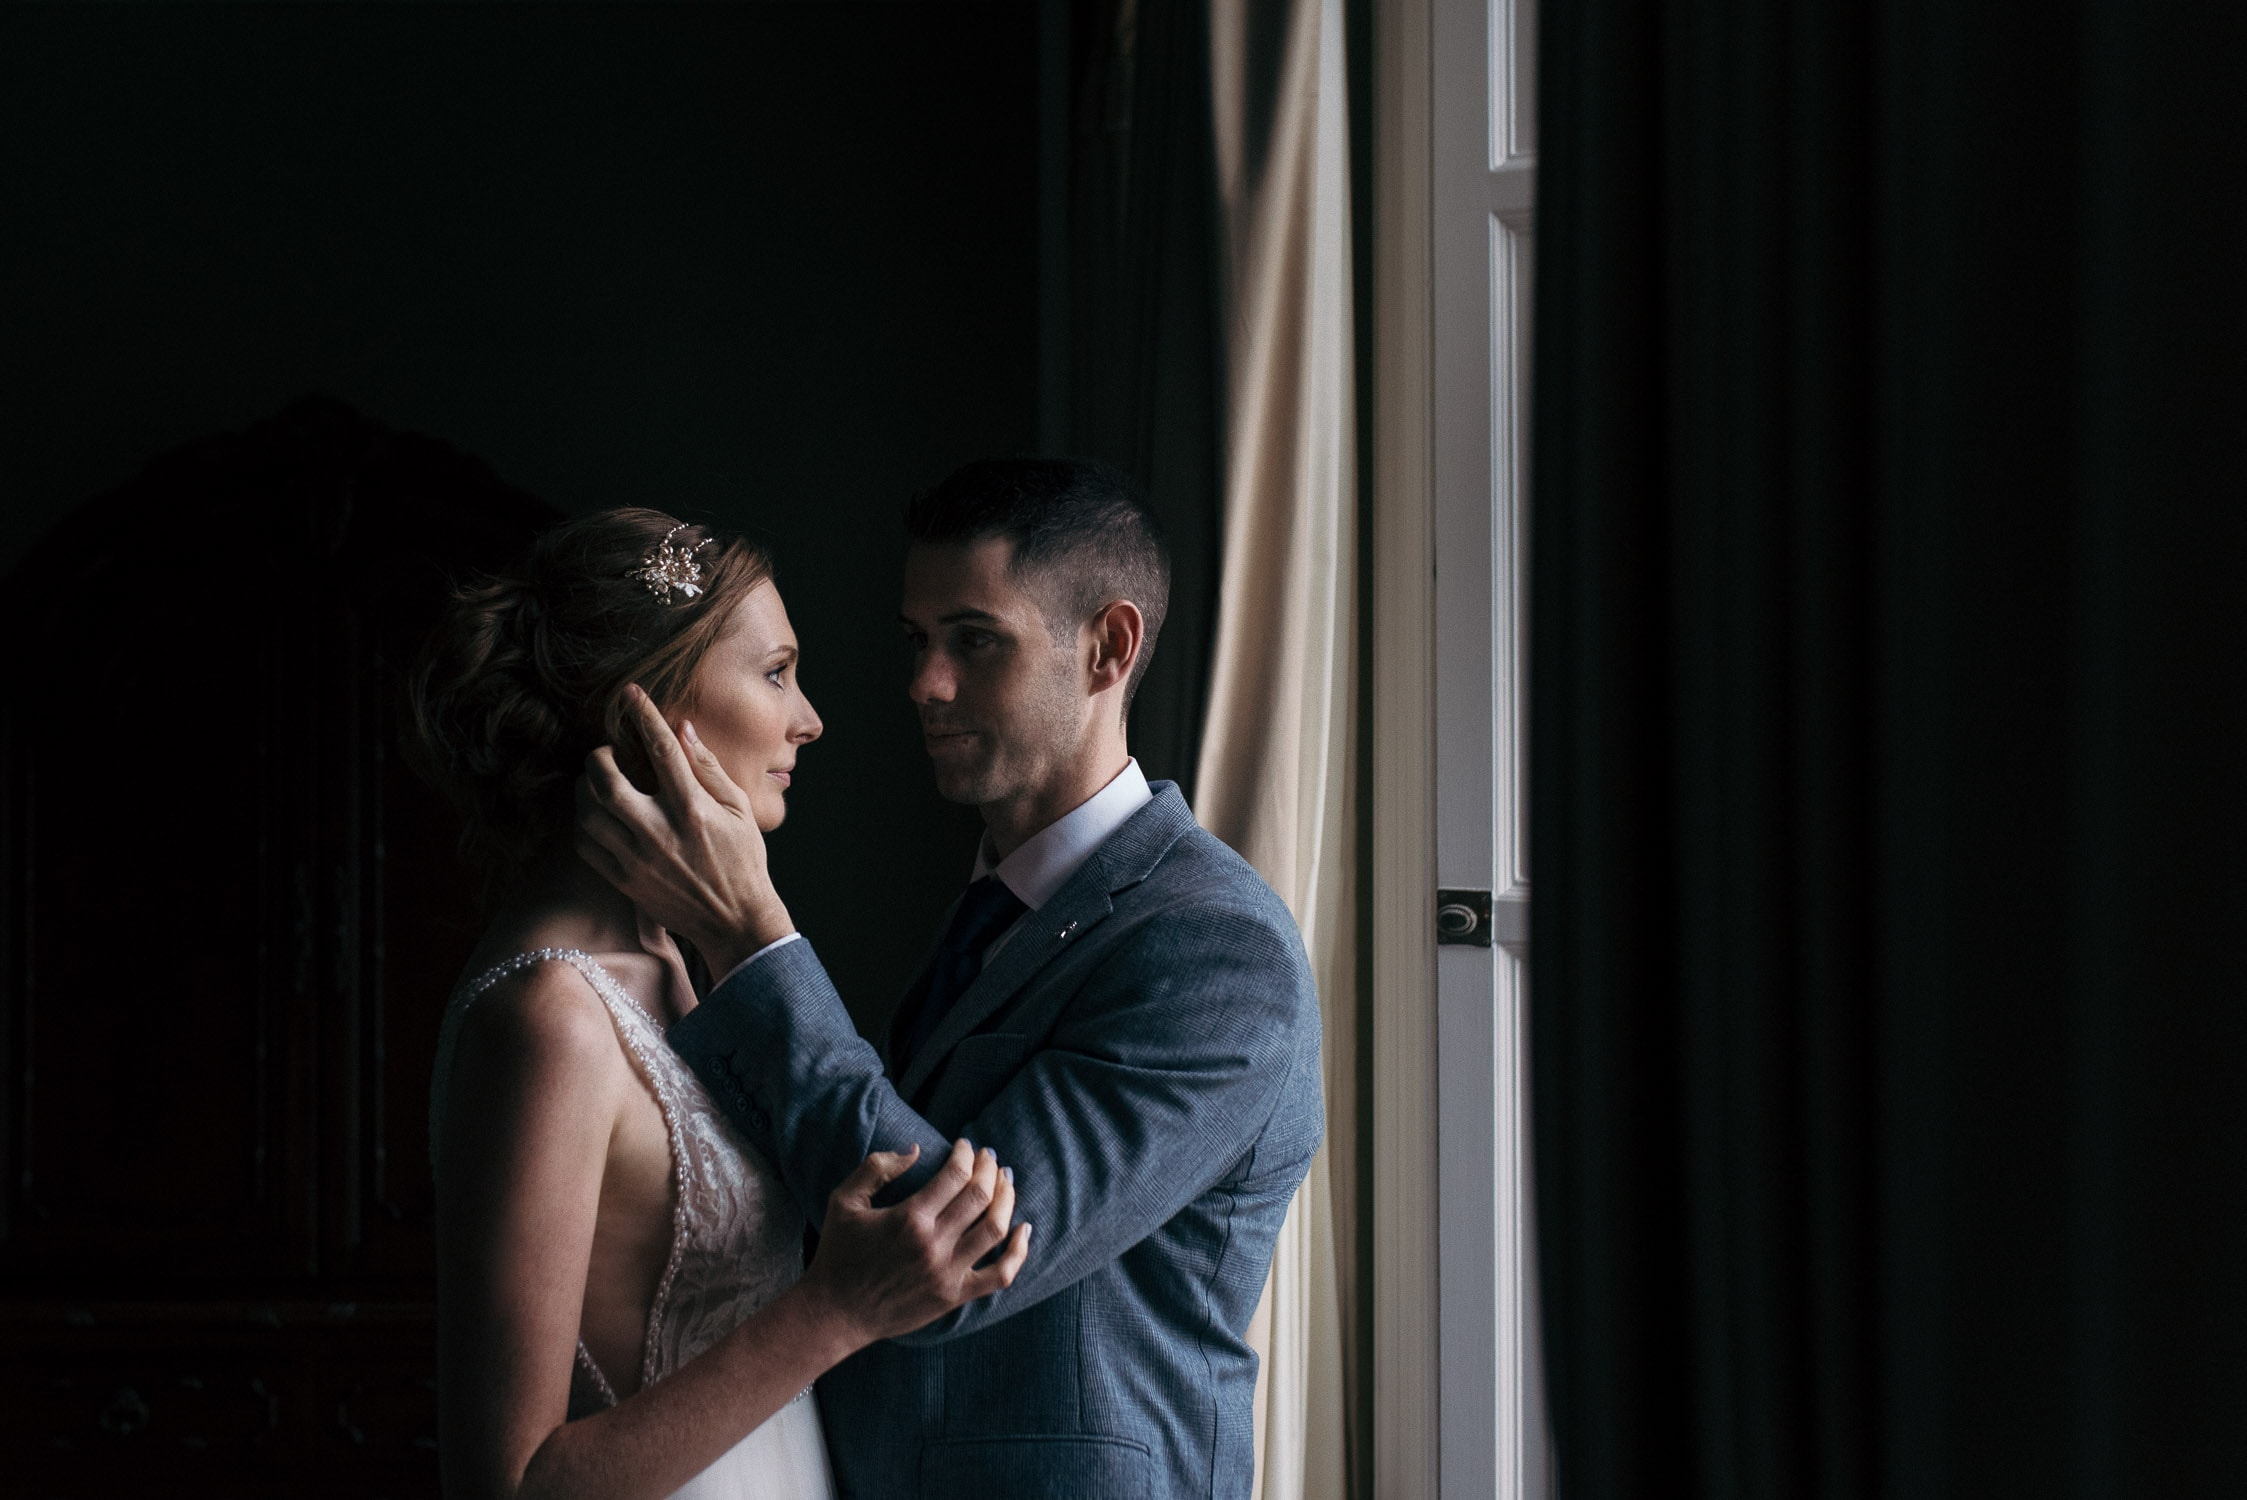 A tender moment between bride and groom